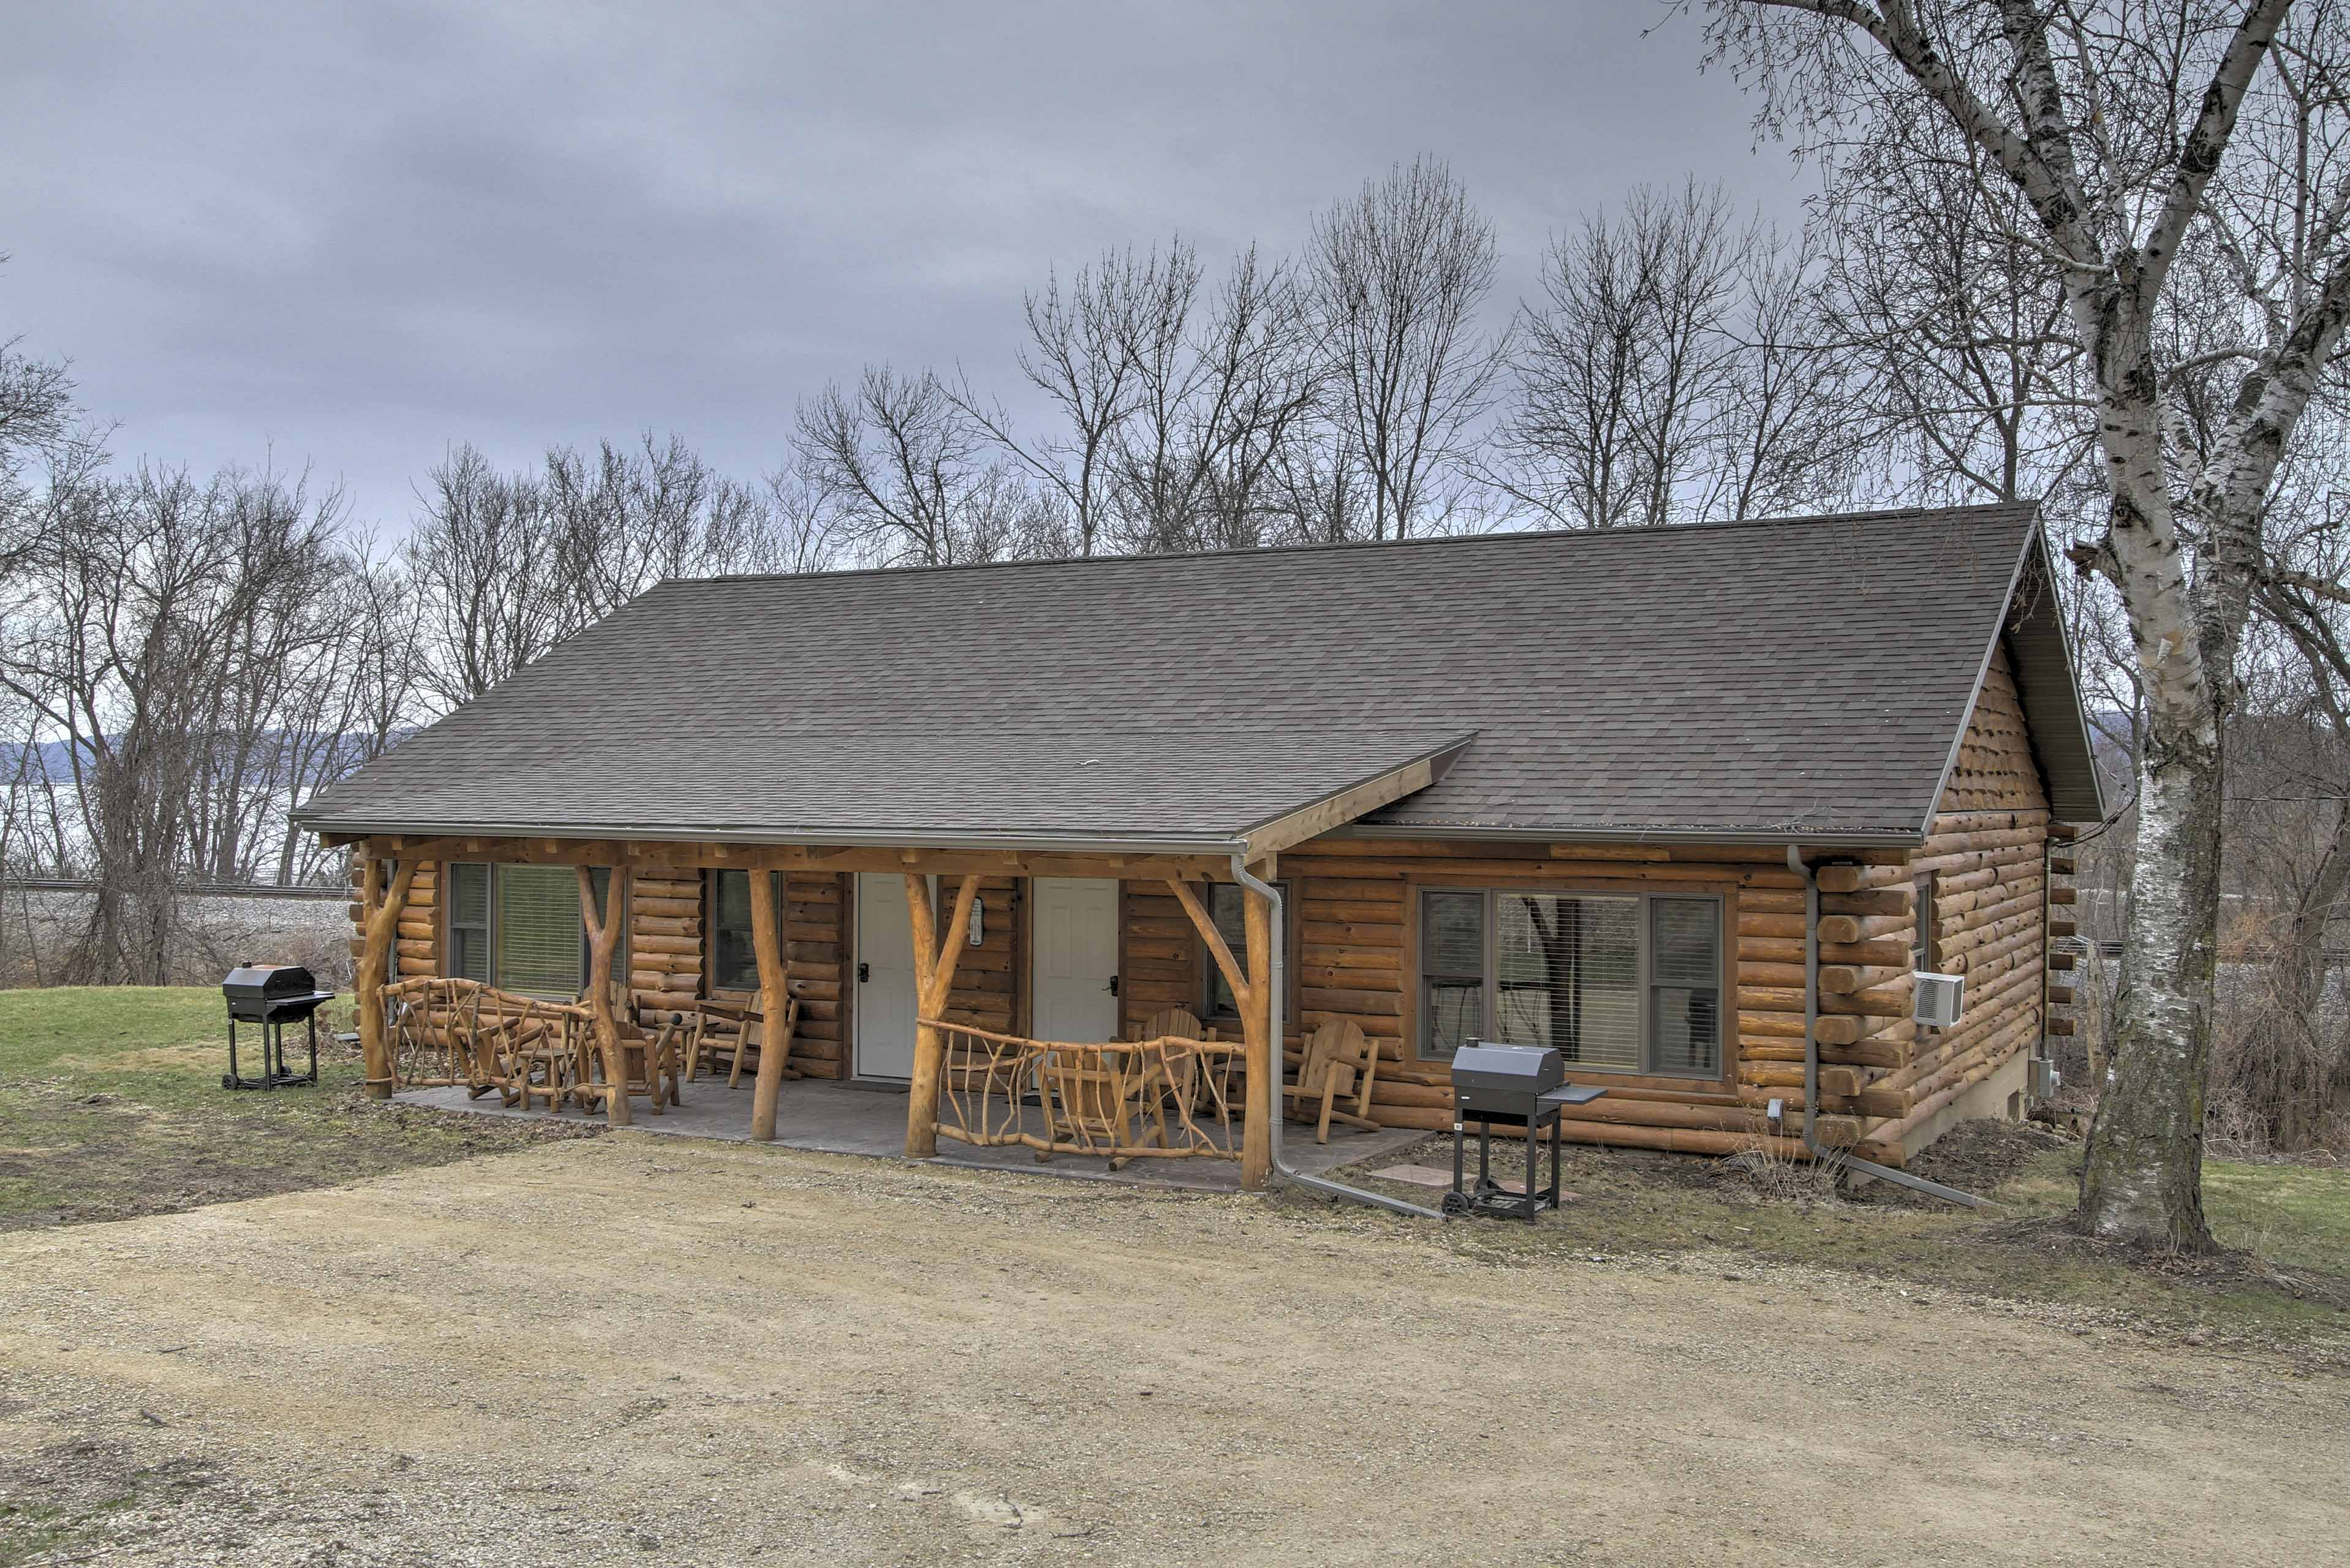 Have a relaxing getaway when you stay at this 2-bedroom, 1-bathroom vacation rental cabin in Ferryville!